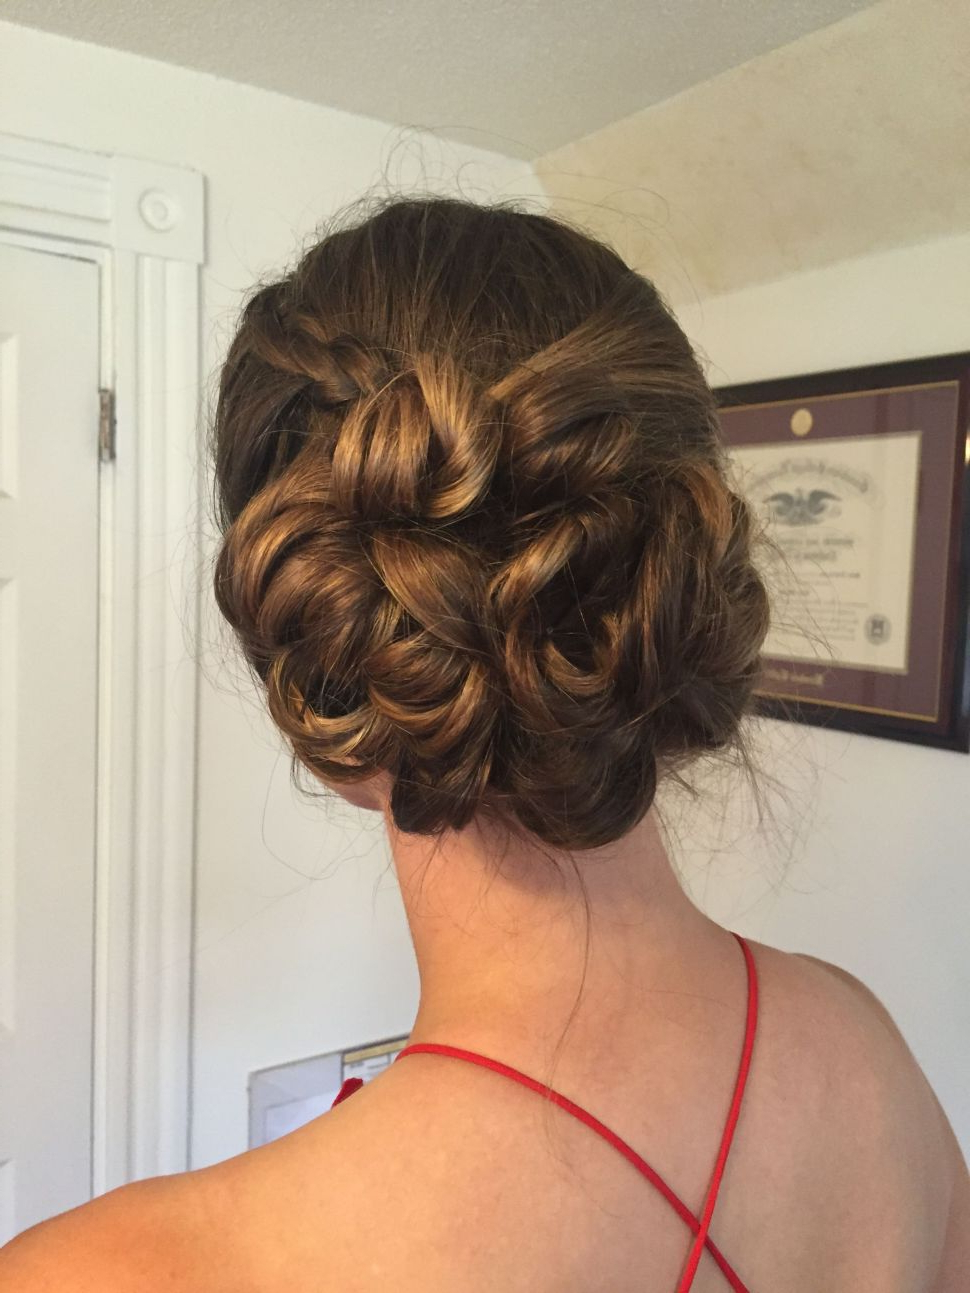 Hairstyles : Chic Braided Bun Hair Excellent Low Side Bun With Regard To Preferred Low Braided Bun Updo Hairstyles (View 20 of 20)